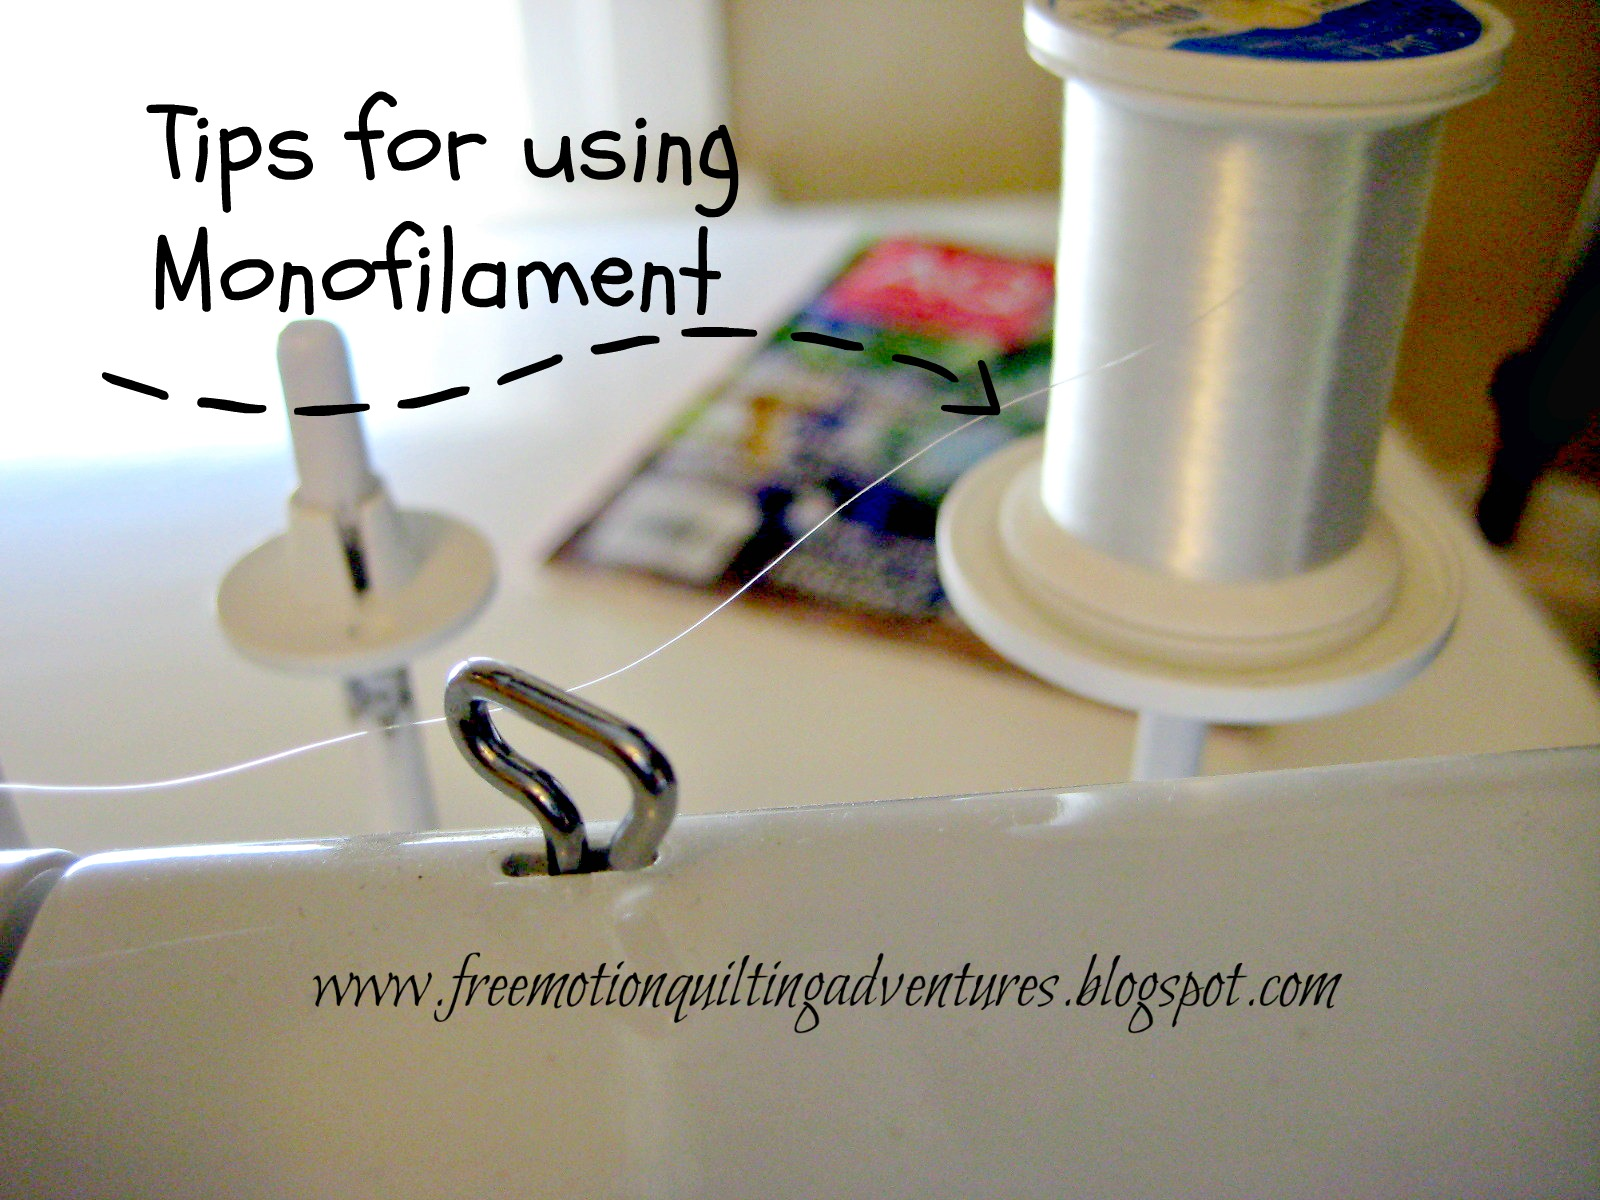 tips for using monofilament thread